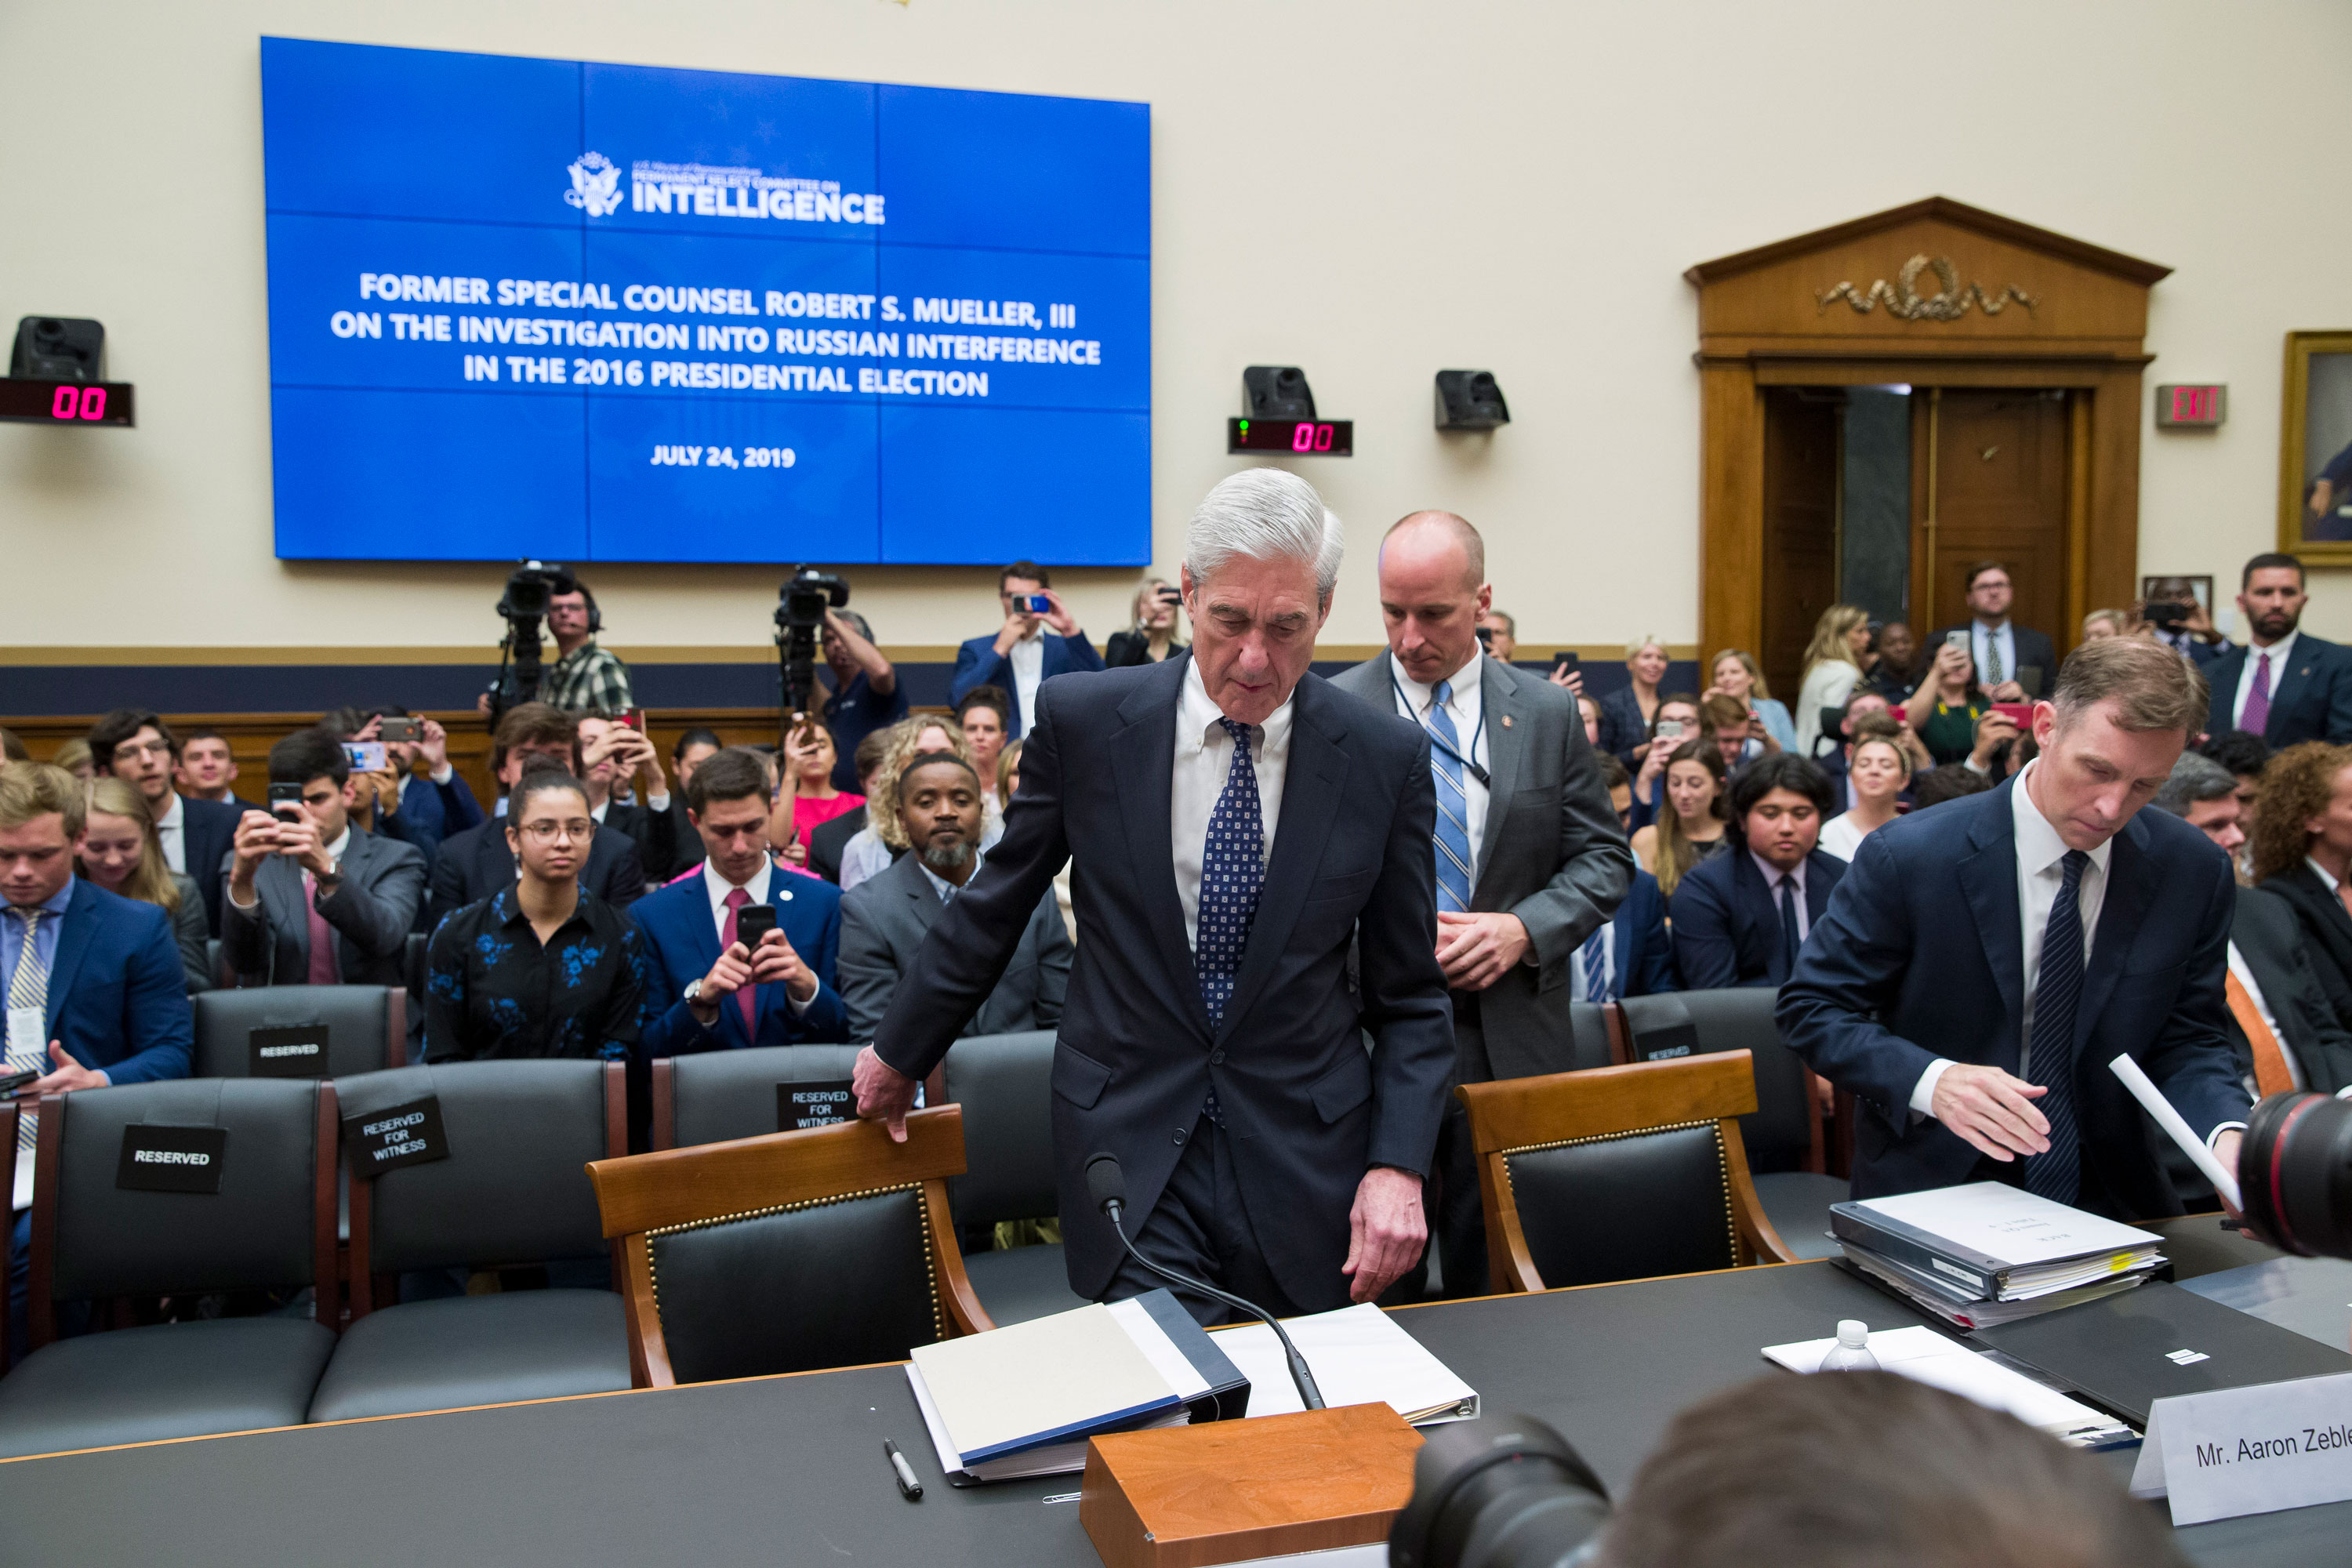 Former special counsel Robert Mueller, accompanied by his top aide in the investigation Aaron Zebley, takes his seat to testify before the House Intelligence Committee hearing on his report on Russian election interference, on Capitol Hill, Wednesday, July 24, 2019 in Washington.